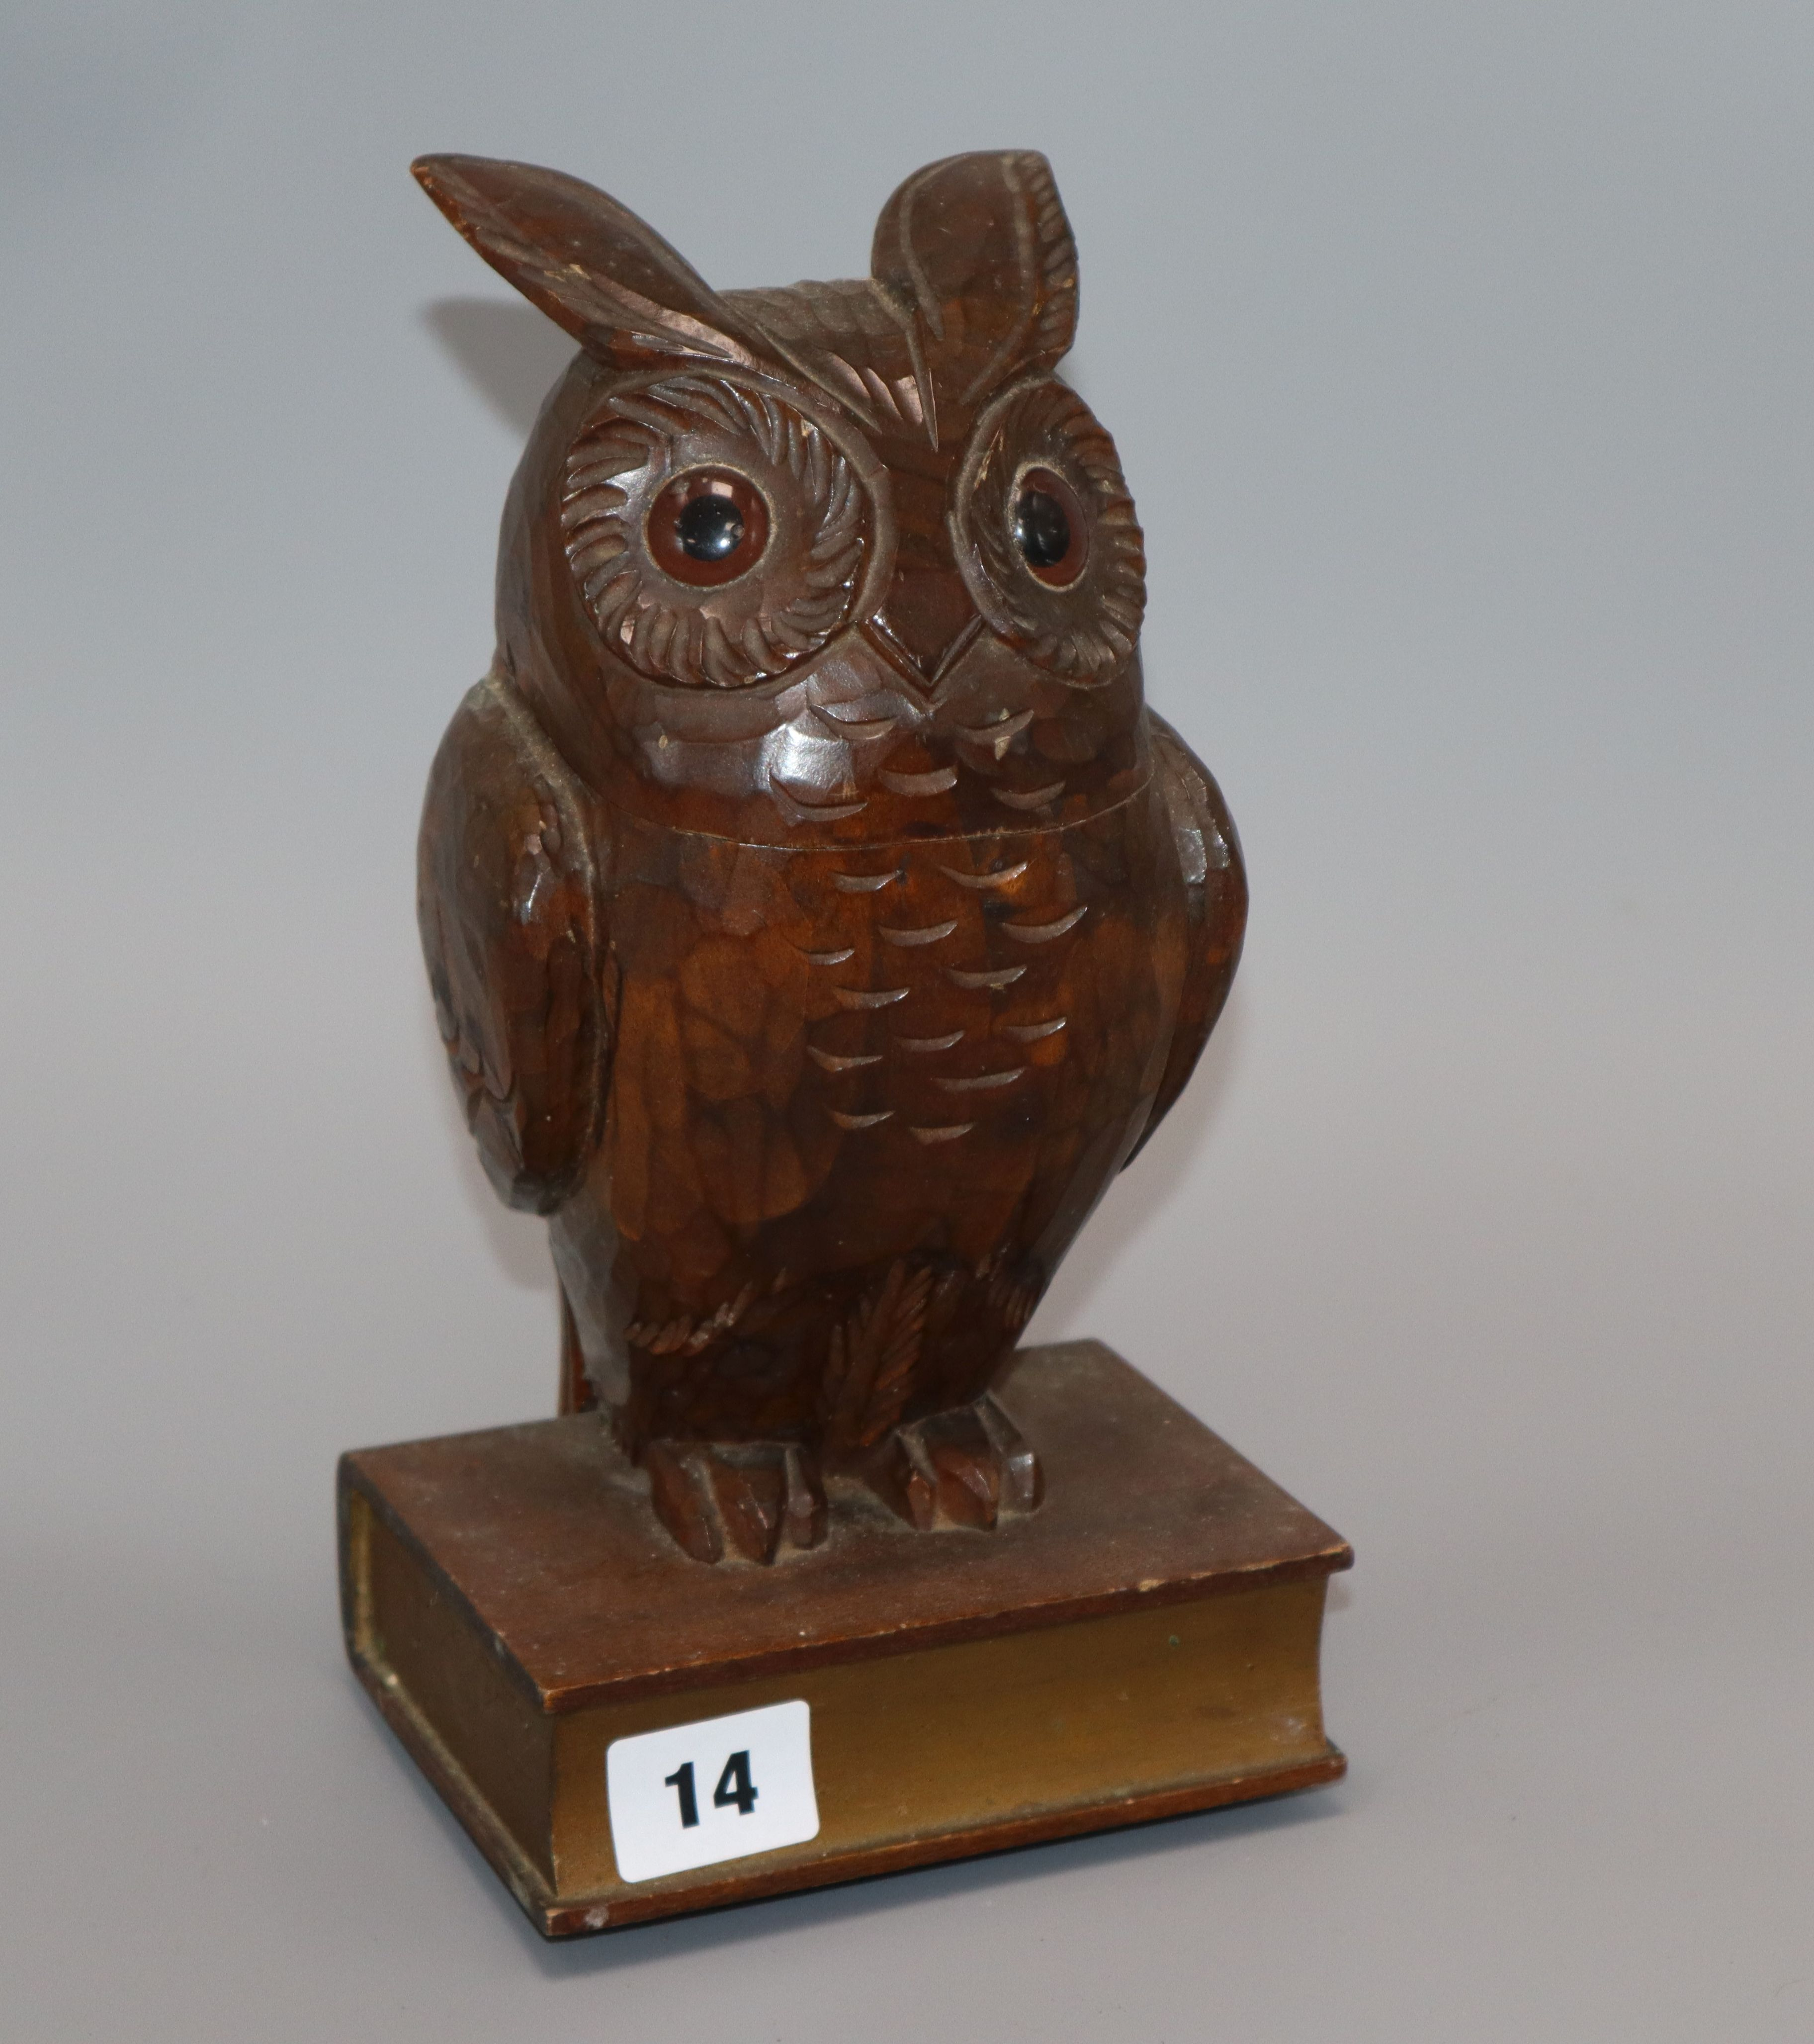 Lot 14 - A Black Forest musical 'owl' box height 25cm